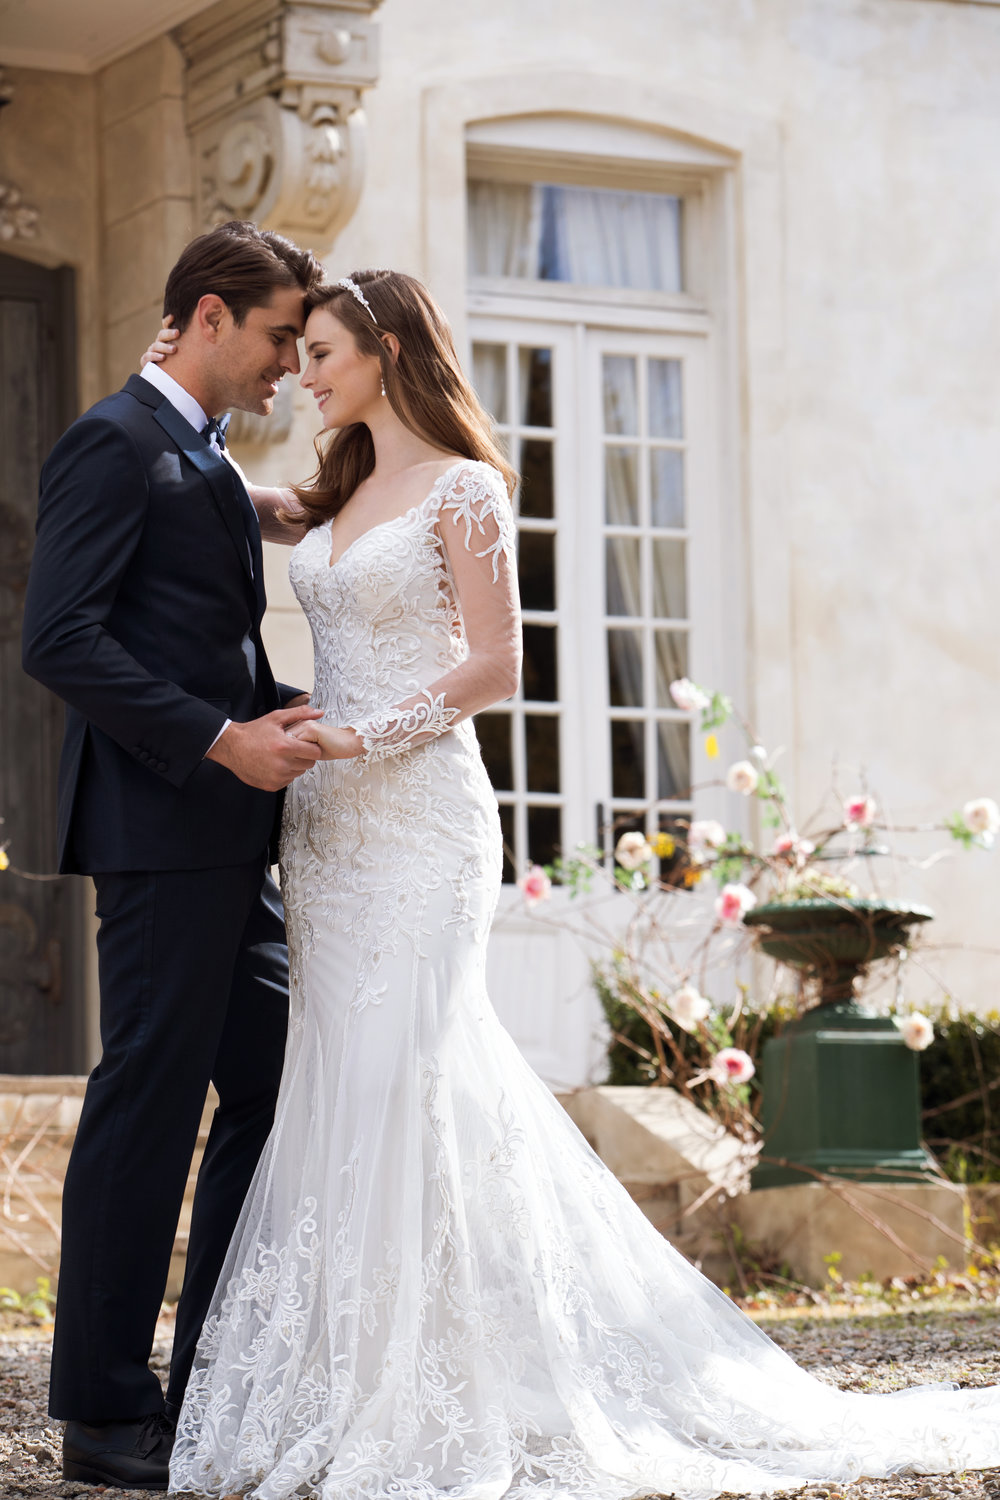 Sophia Tolli  - Iona. With or without sleeves this impressive bridal gown is sure to have the wow factor at your wedding.